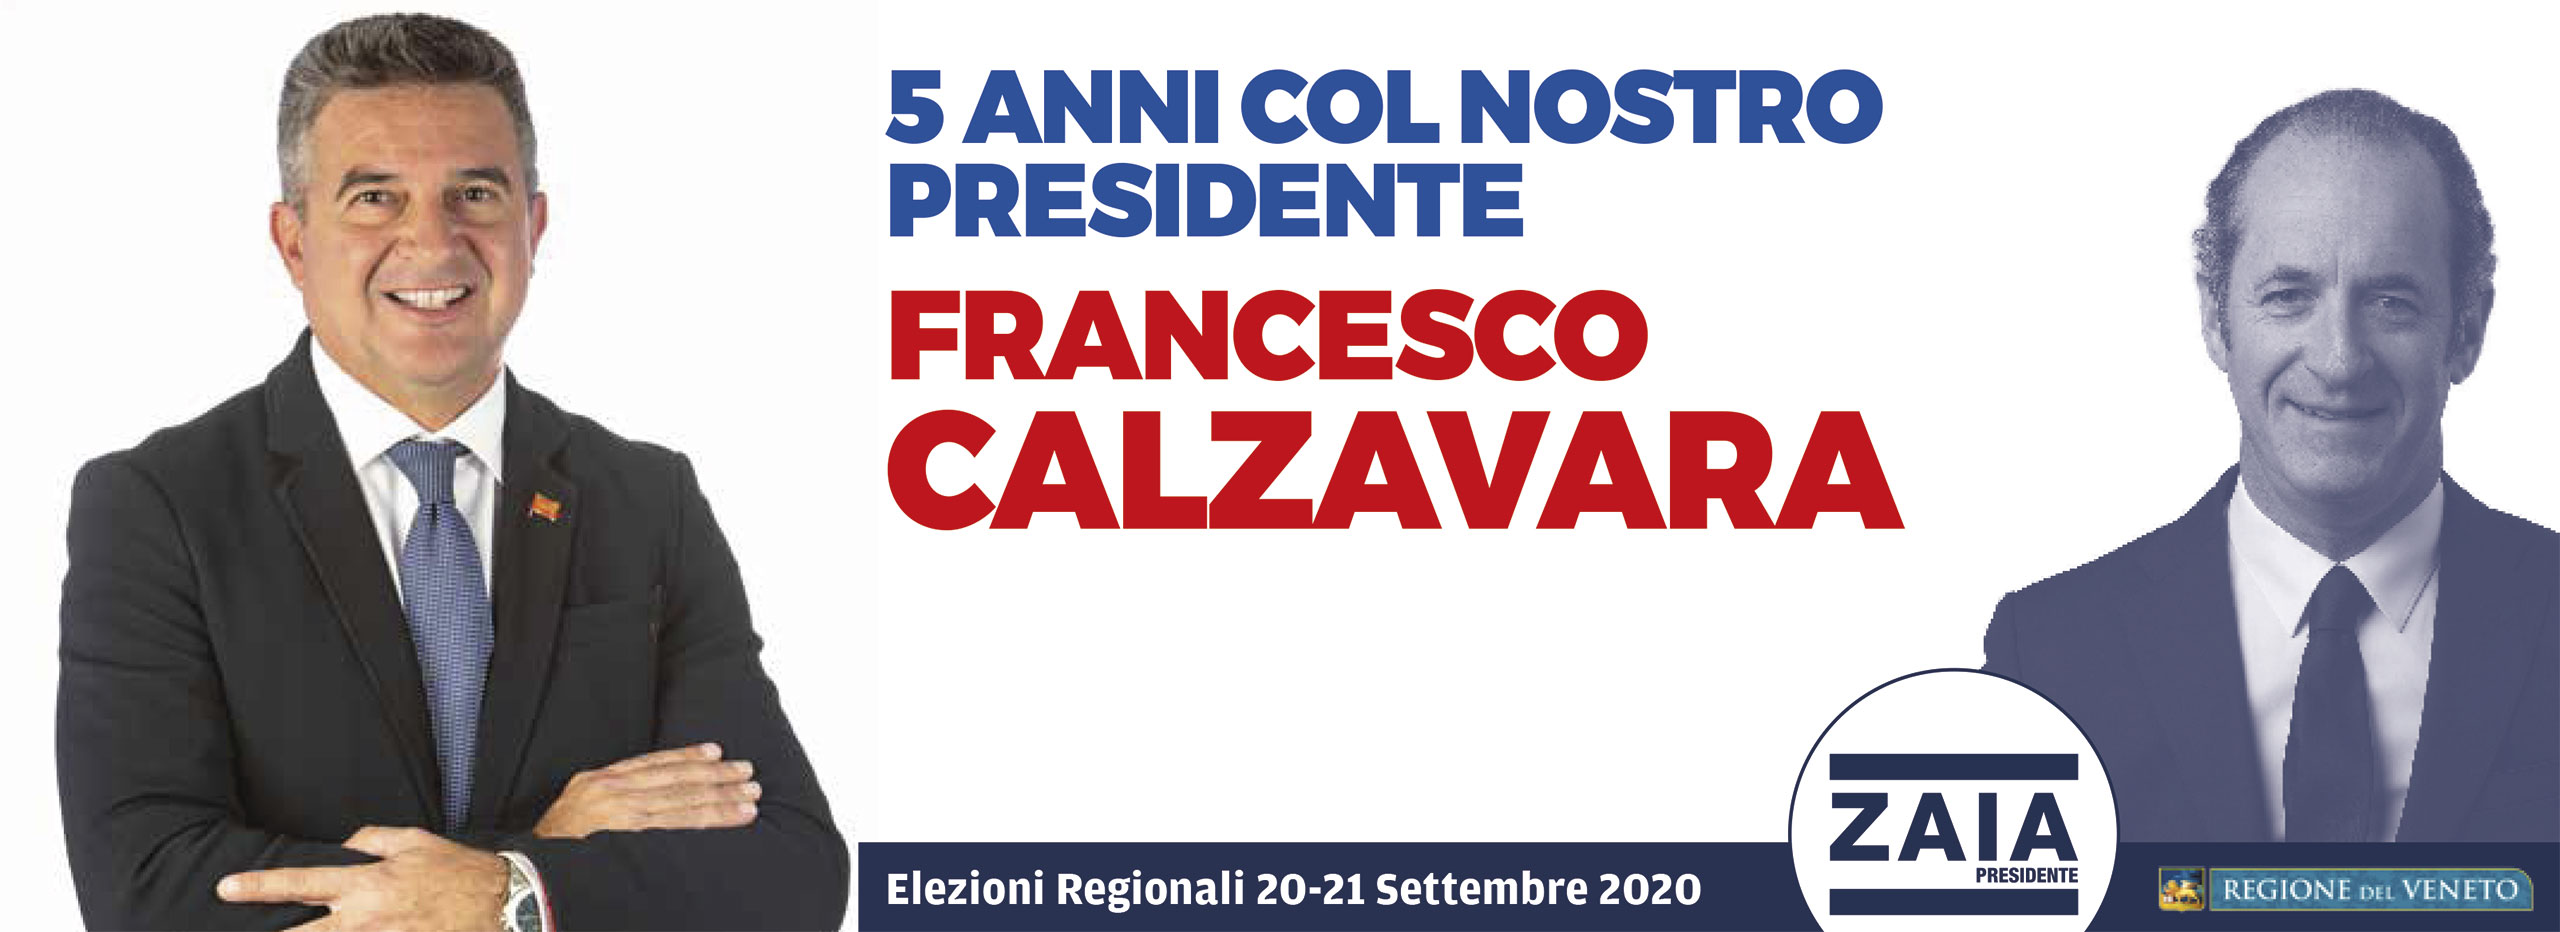 francesco-calzavara